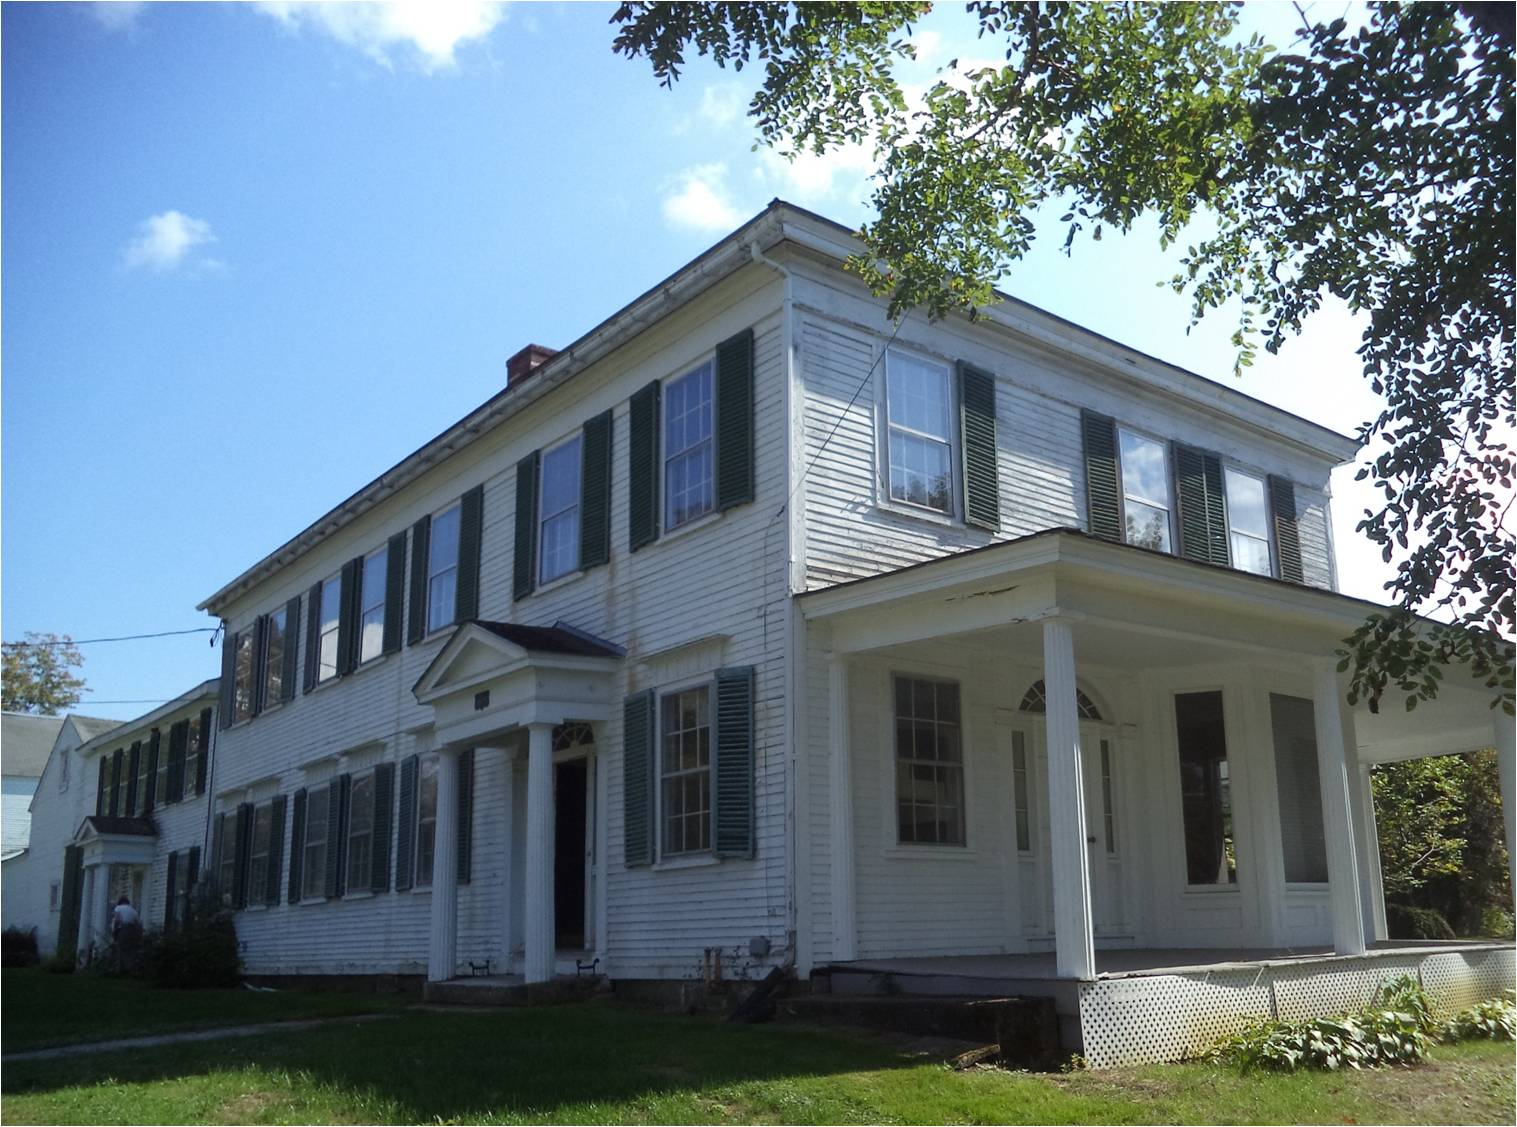 The Col. Brown House in Haverhill Corner received one of 29 historic preservation project grants across the state this LCHIP grant round. The $150,000 grant to project leaders, Haverhill Heritage, will be used for acquistion and repair; it follows an assessment grant from the Preservation Alliance earlier this year.